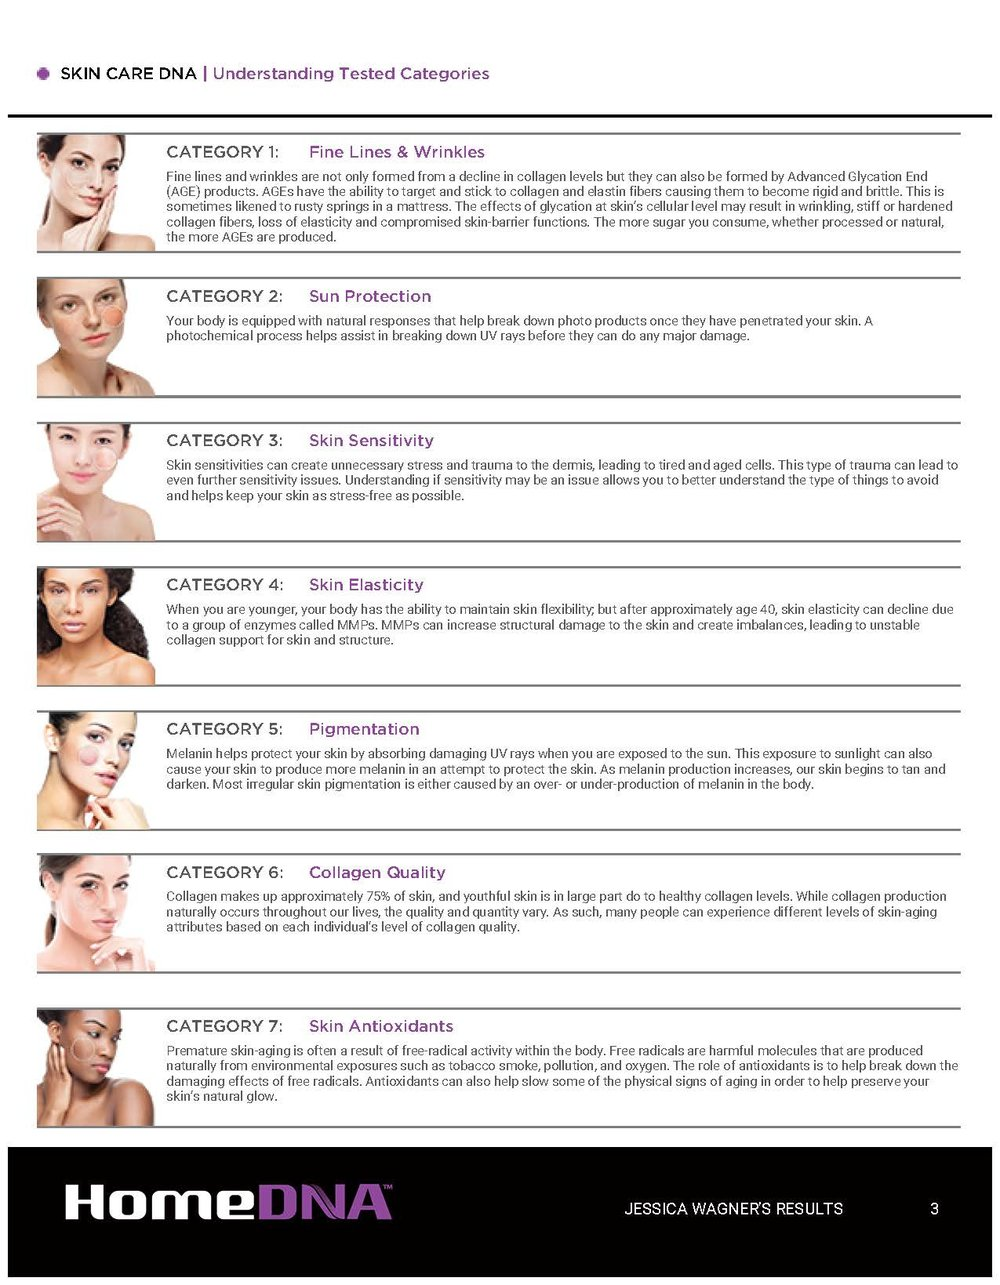 Jess_DNA_Skin_Results_Page_03.jpg